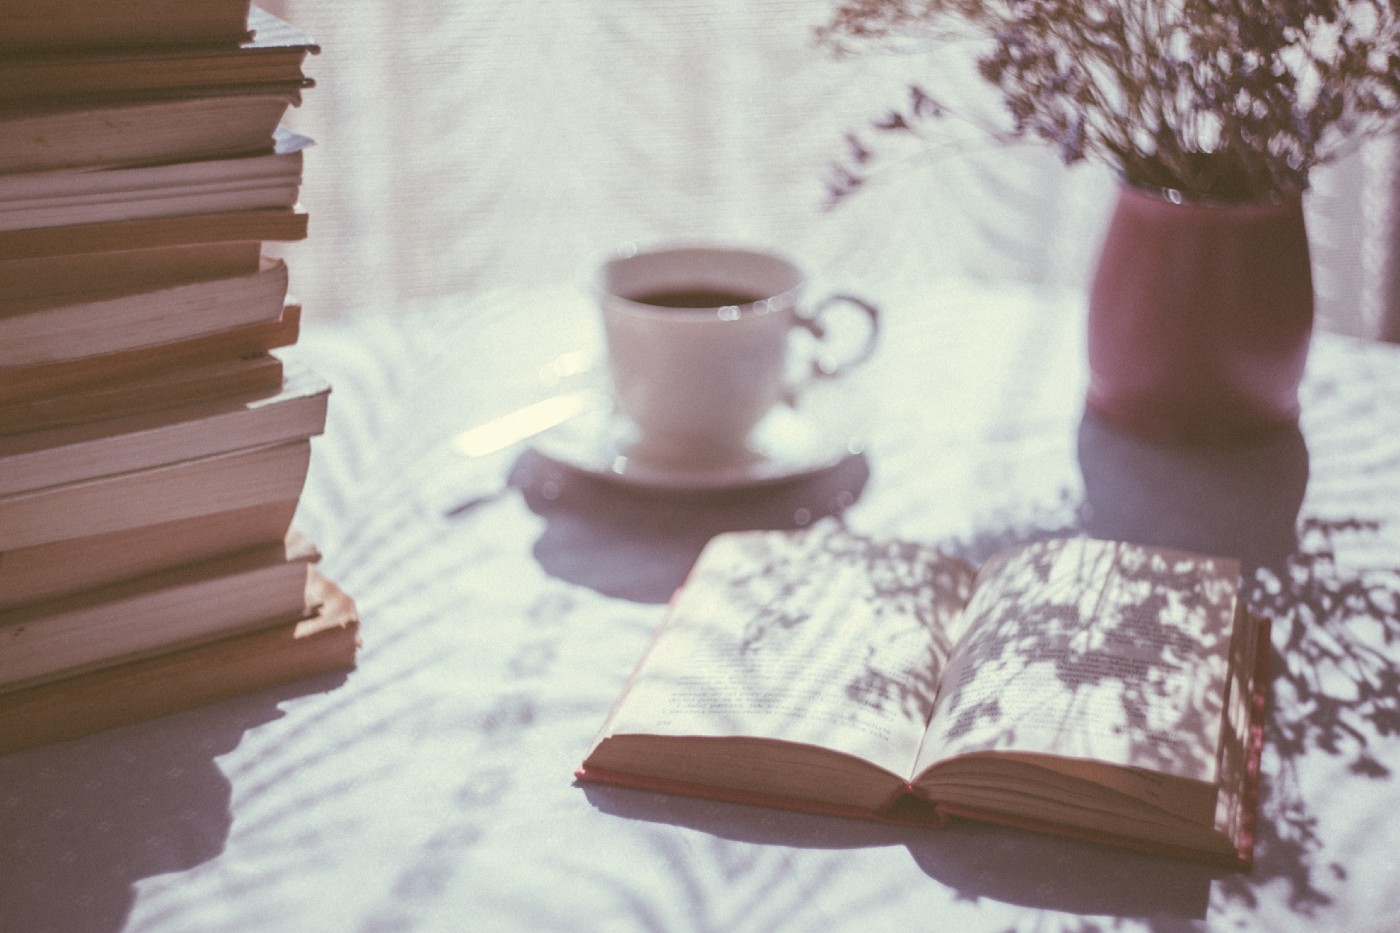 Calming scenery with an open book, vase and a cup of coffee